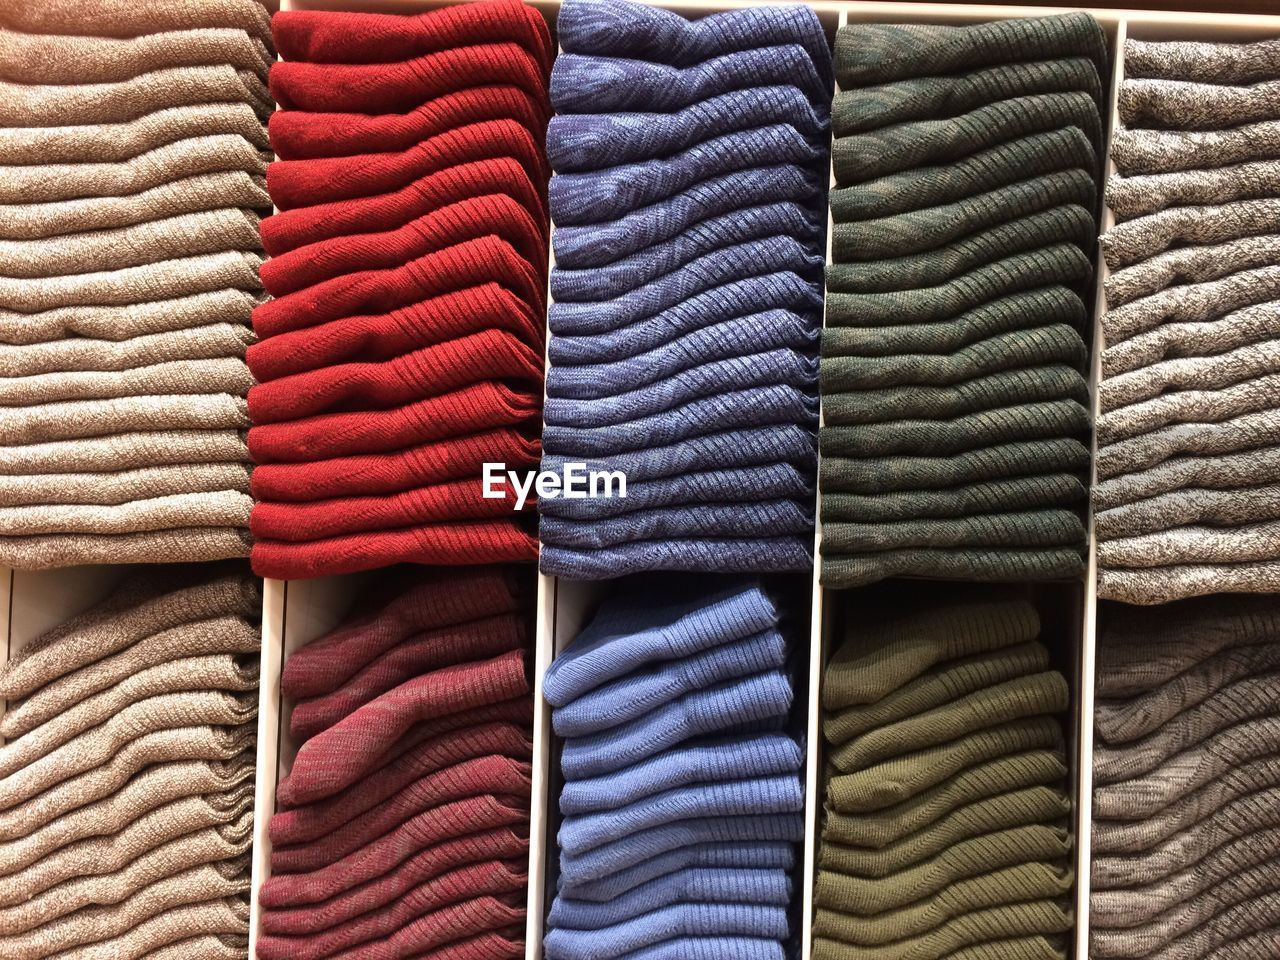 Full frame shot of multi colored sweaters stacked in store